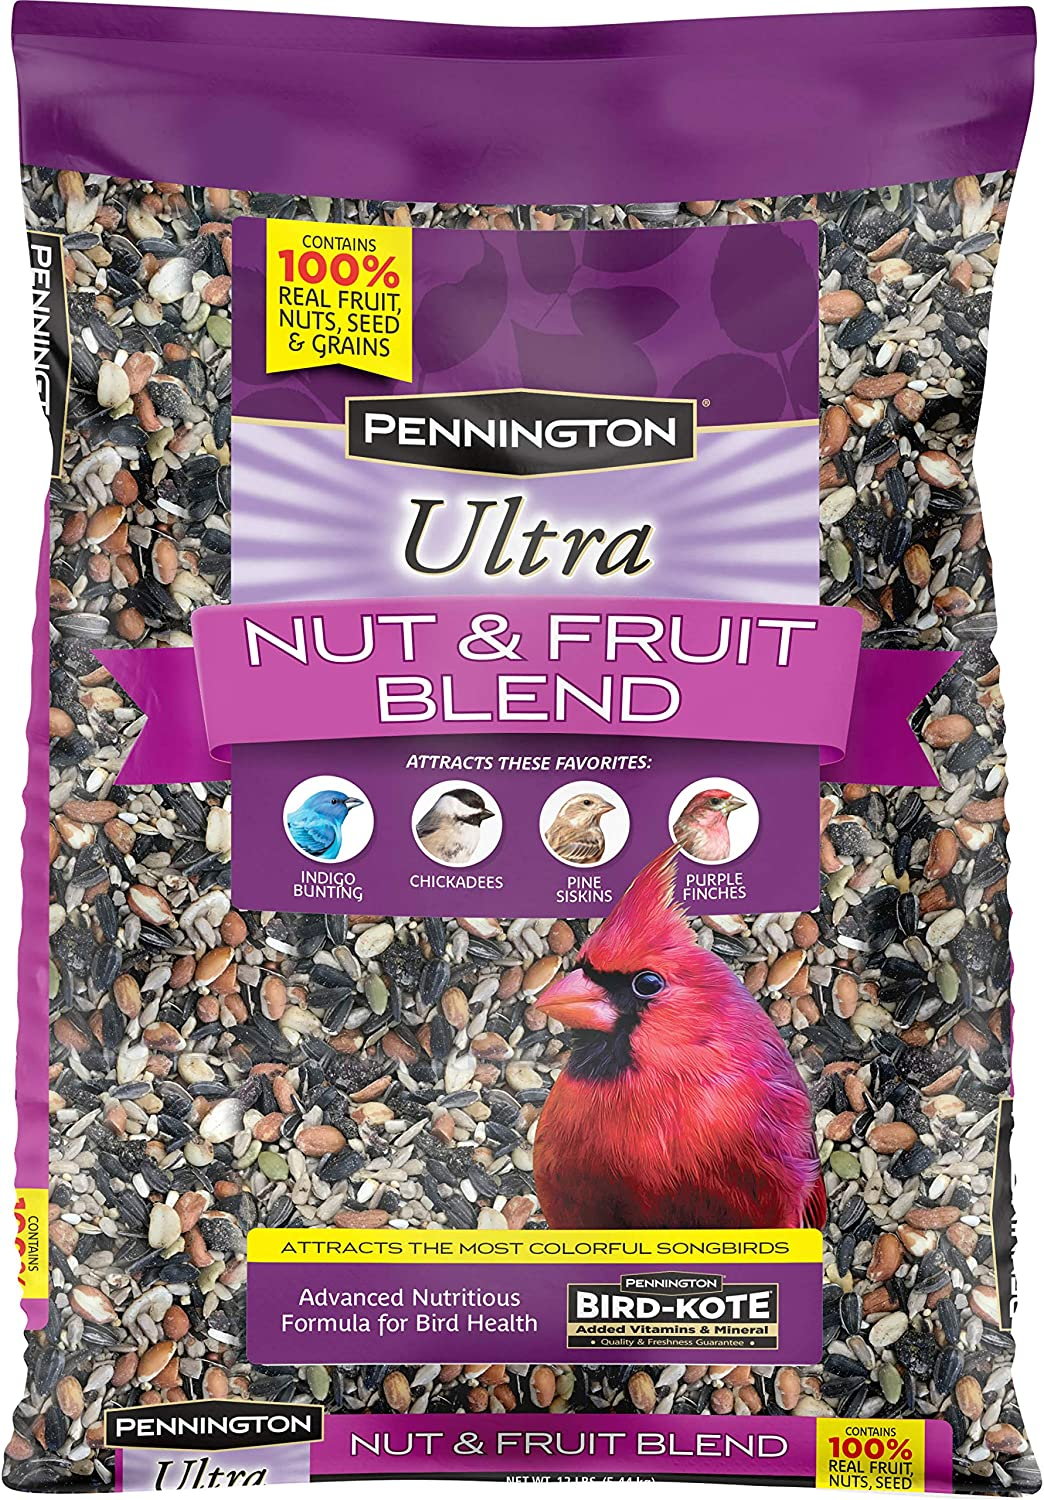 Pennington Pack of 2 Ultra Fruit & Nut Blend Wild Bird Seed and Feed, 12 lbs